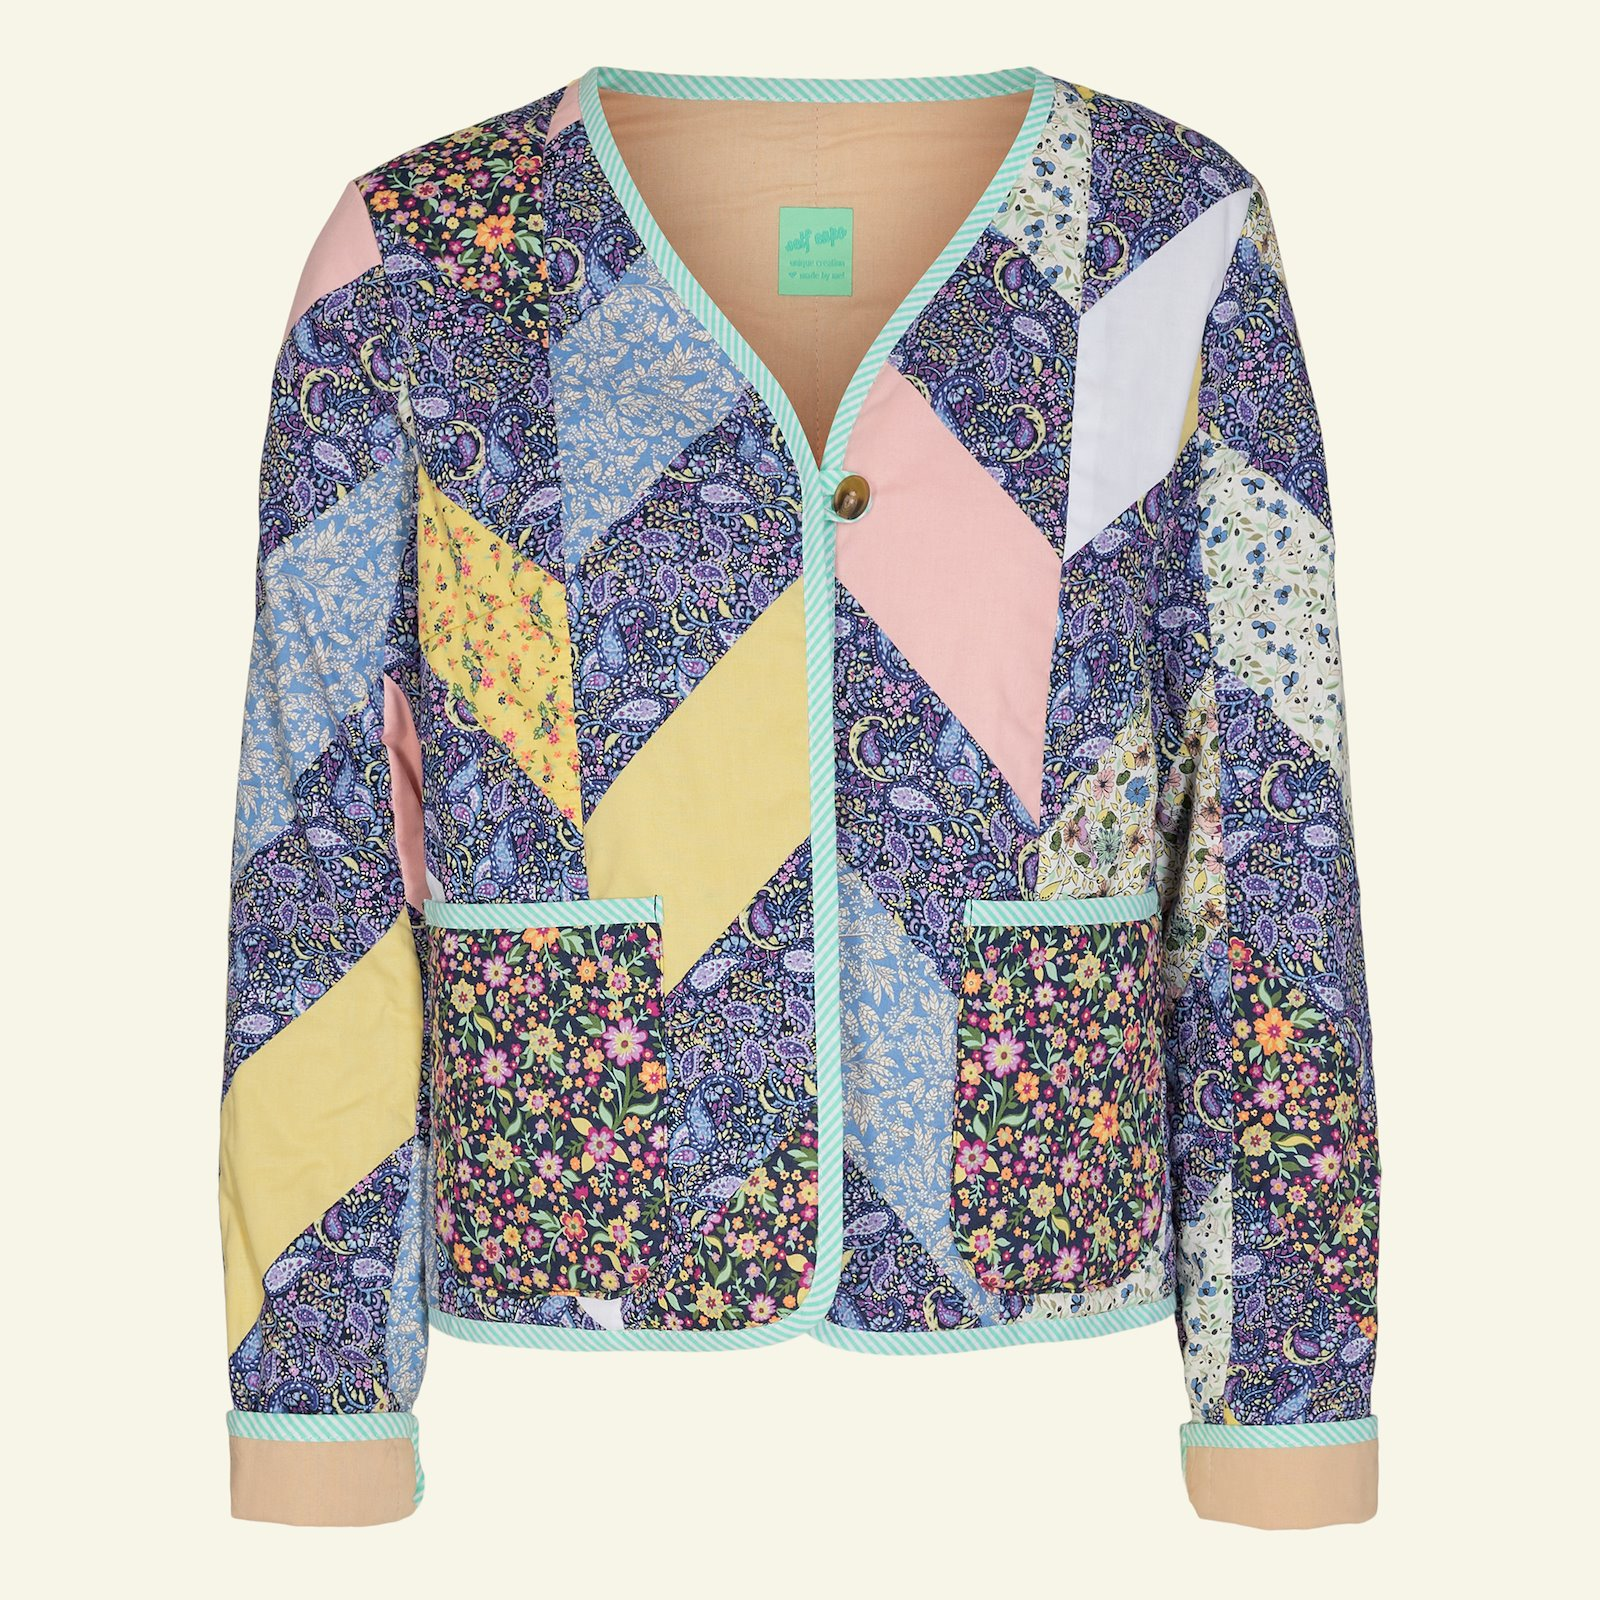 Quilted jacket and waistcoat, 44/16 p24047_852365_852363_852364_852362_852359_852366_4358_4201_4357_64108_sskit